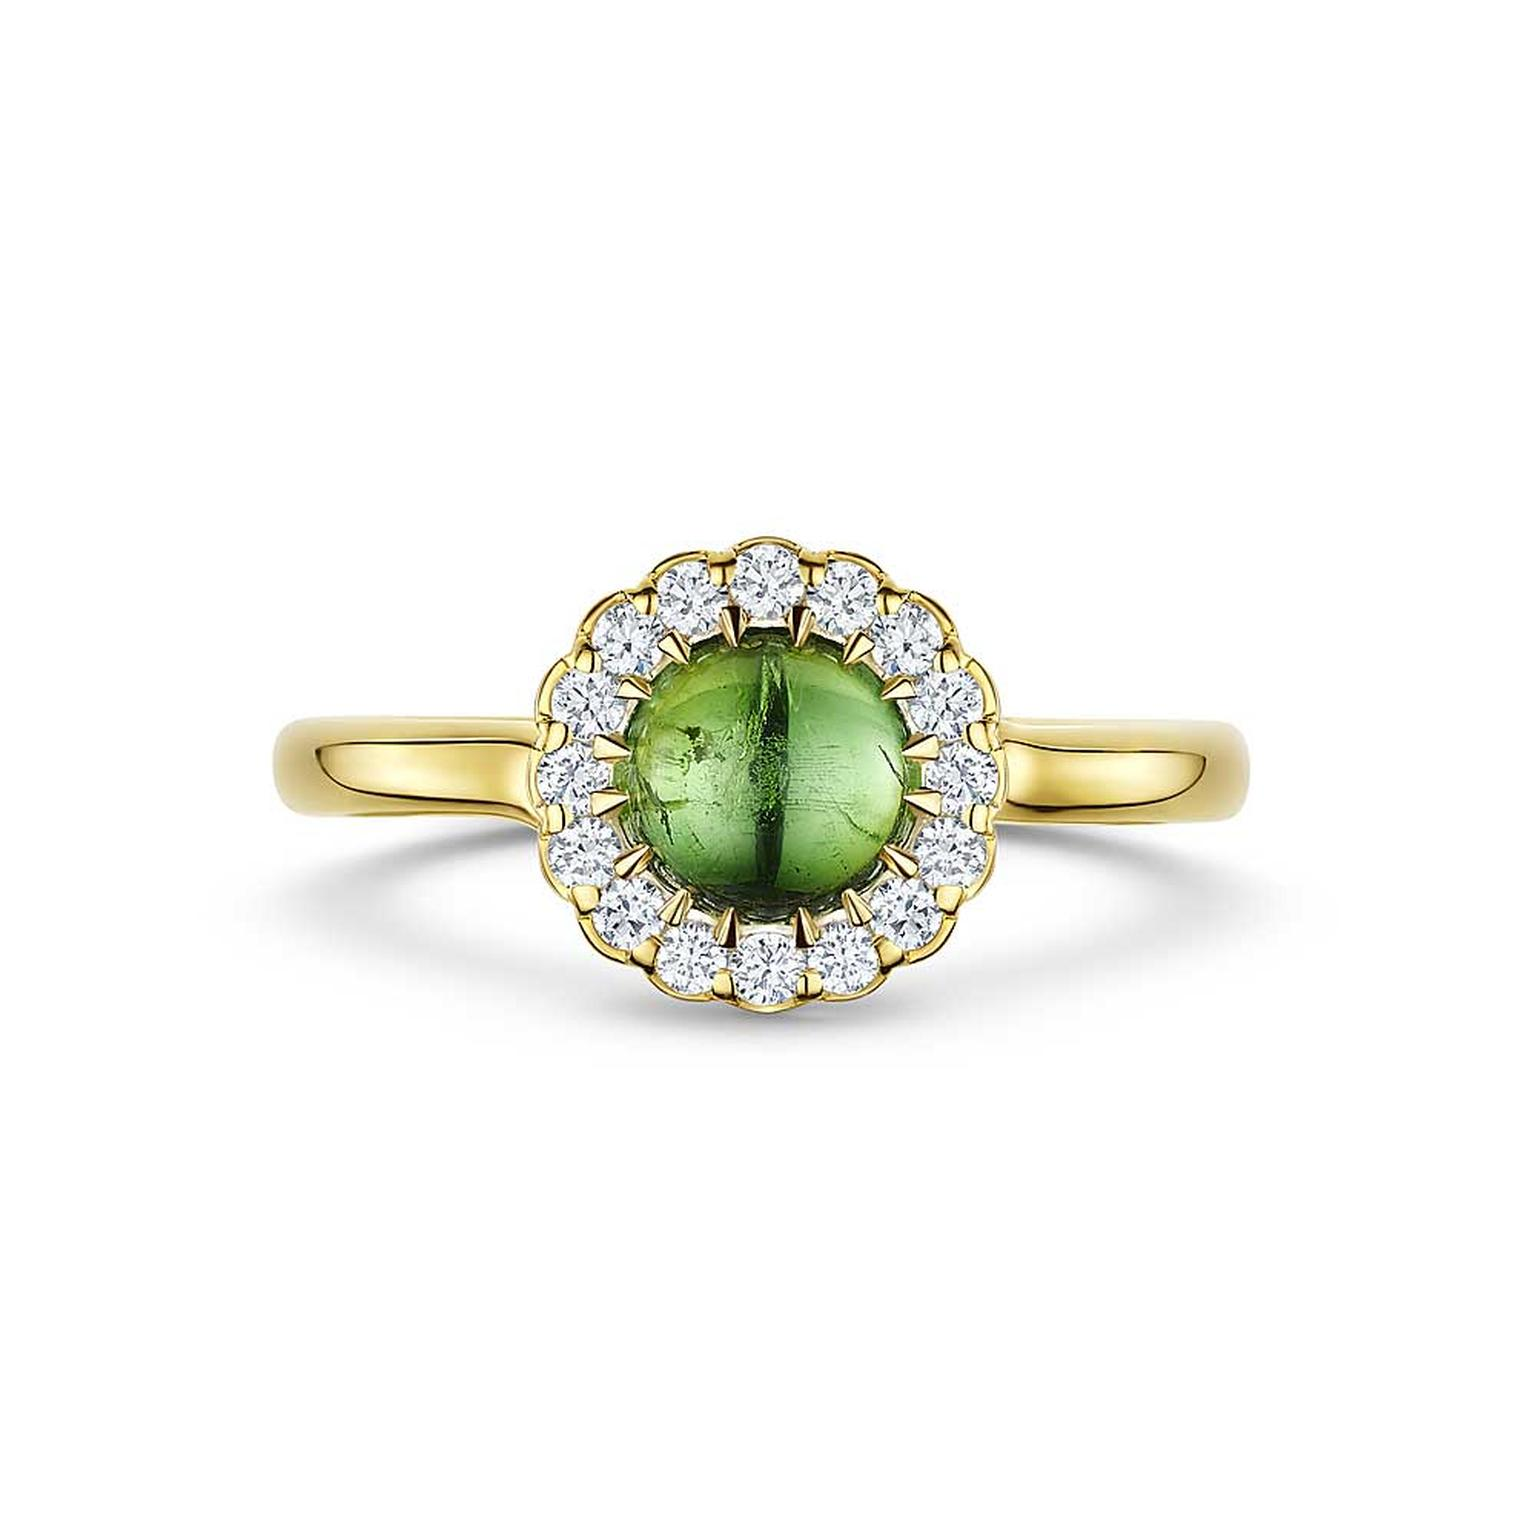 Andrew Geoghegan Cannele Twist cabochon tourmaline ring in 18ct yellow gold with diamonds